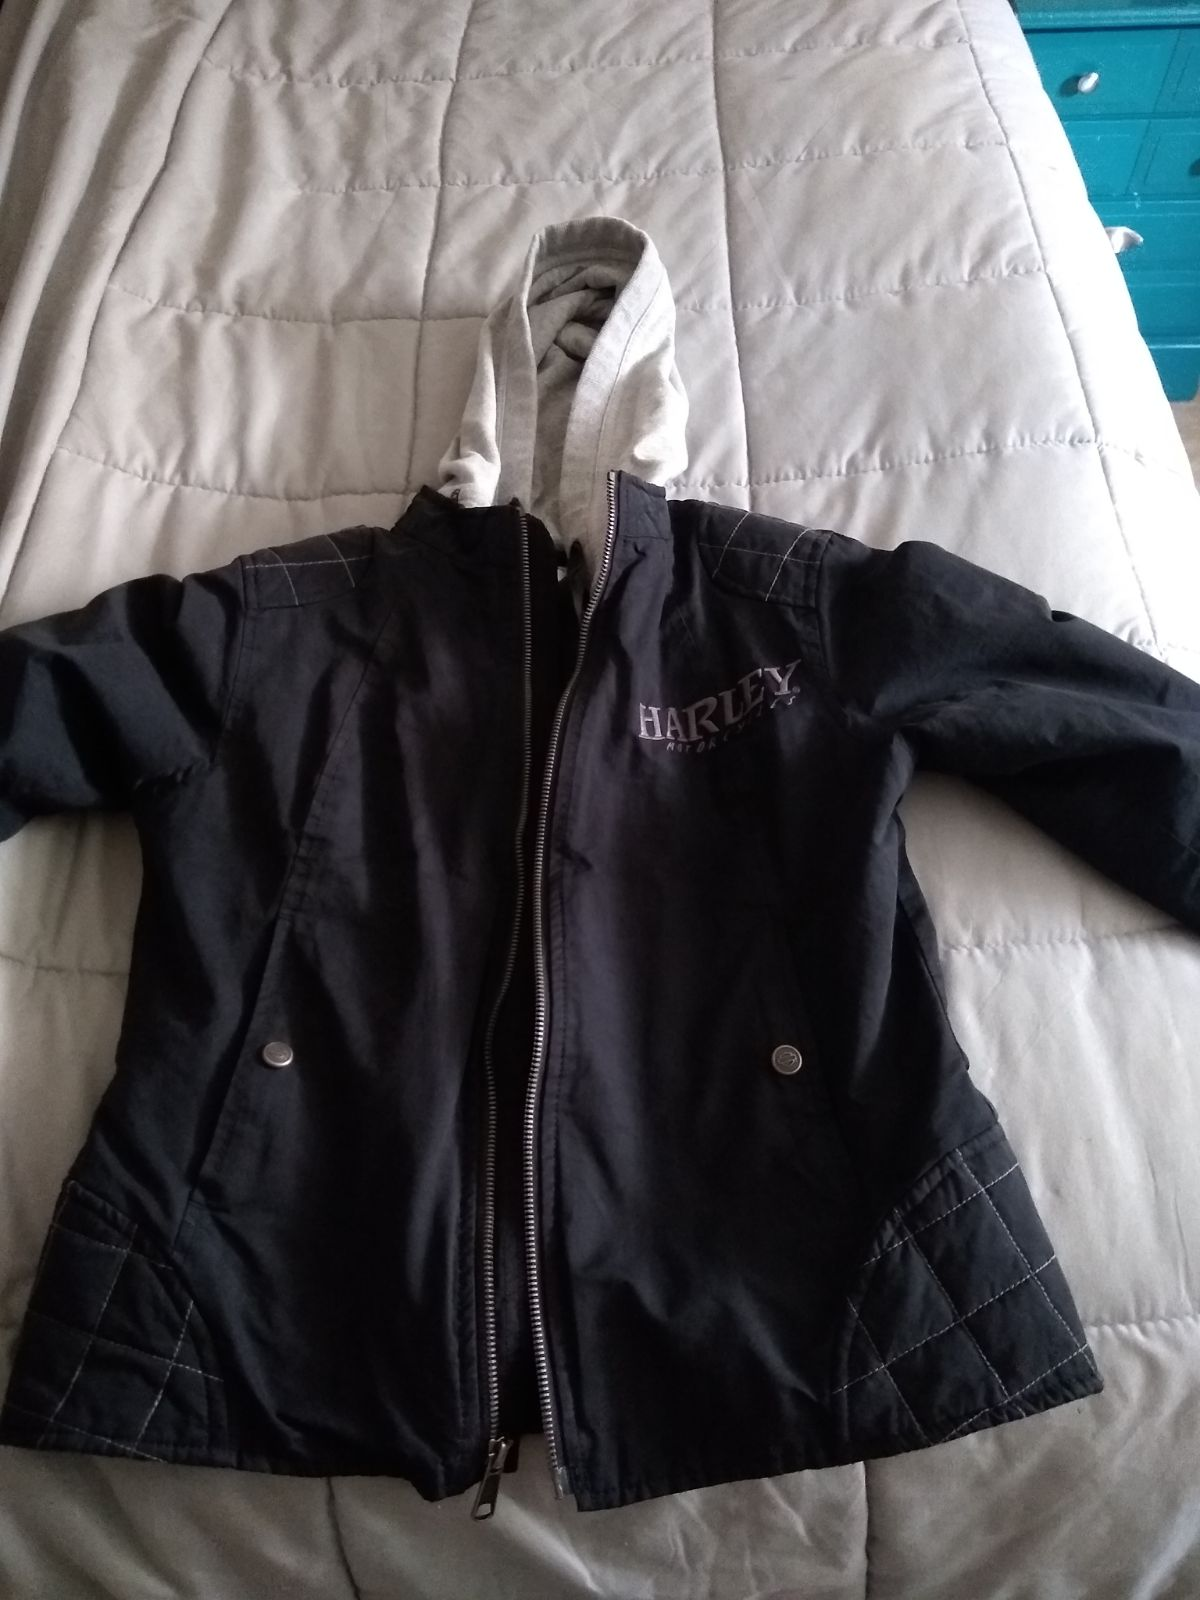 Women's Harley Davidson Riding Jacket